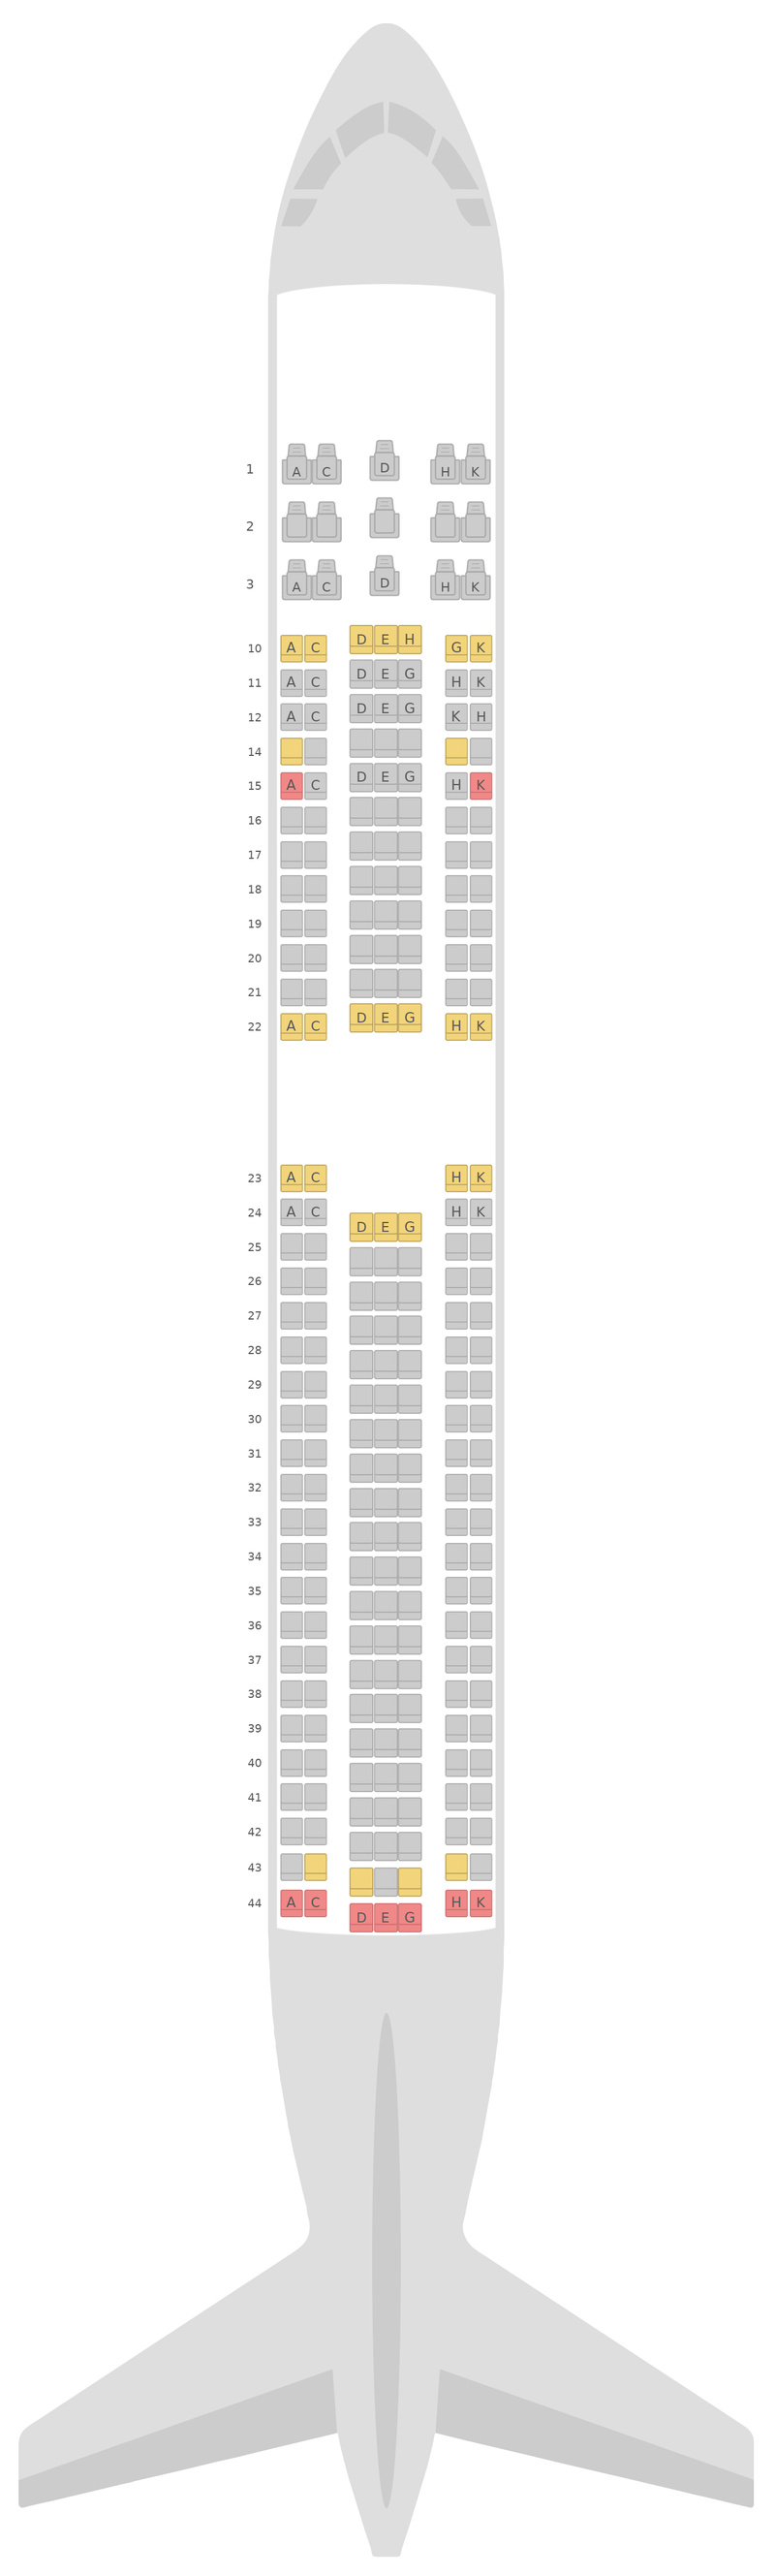 Seat Map Asiana Airlines Boeing 767-300 (763) 2 Class